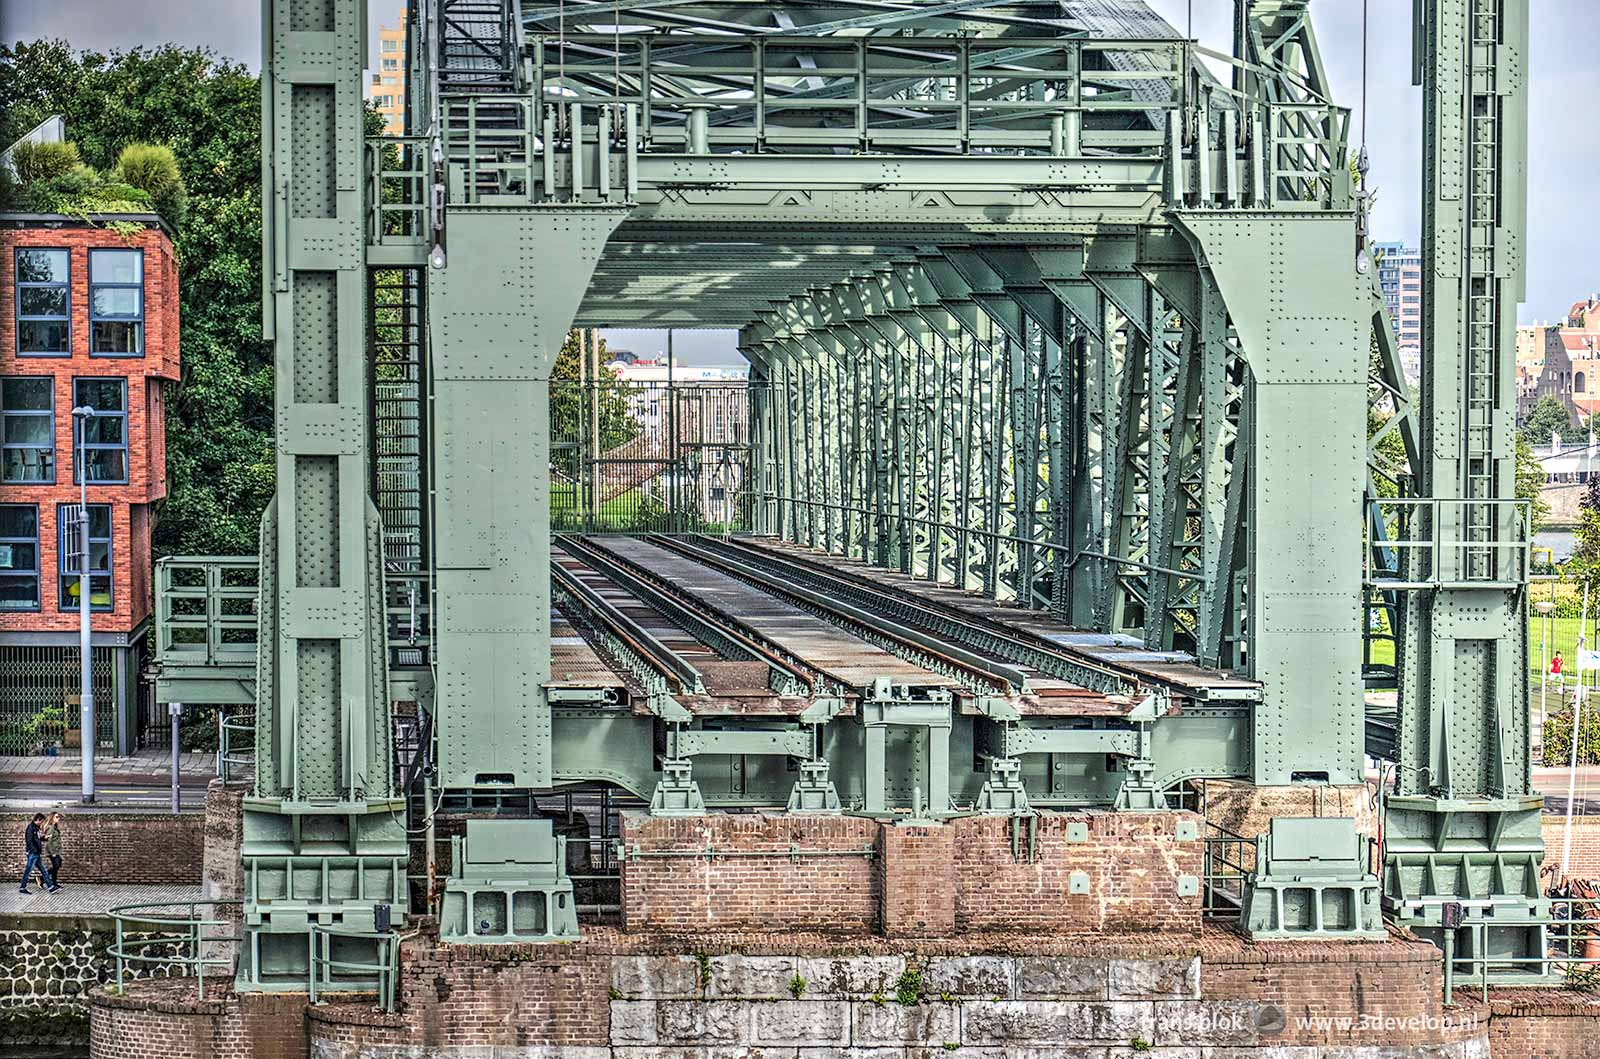 The northern section of monumental railway bridge De Hef in Rotterdam, seen from the southern tower, during Open Monuments Day 2017